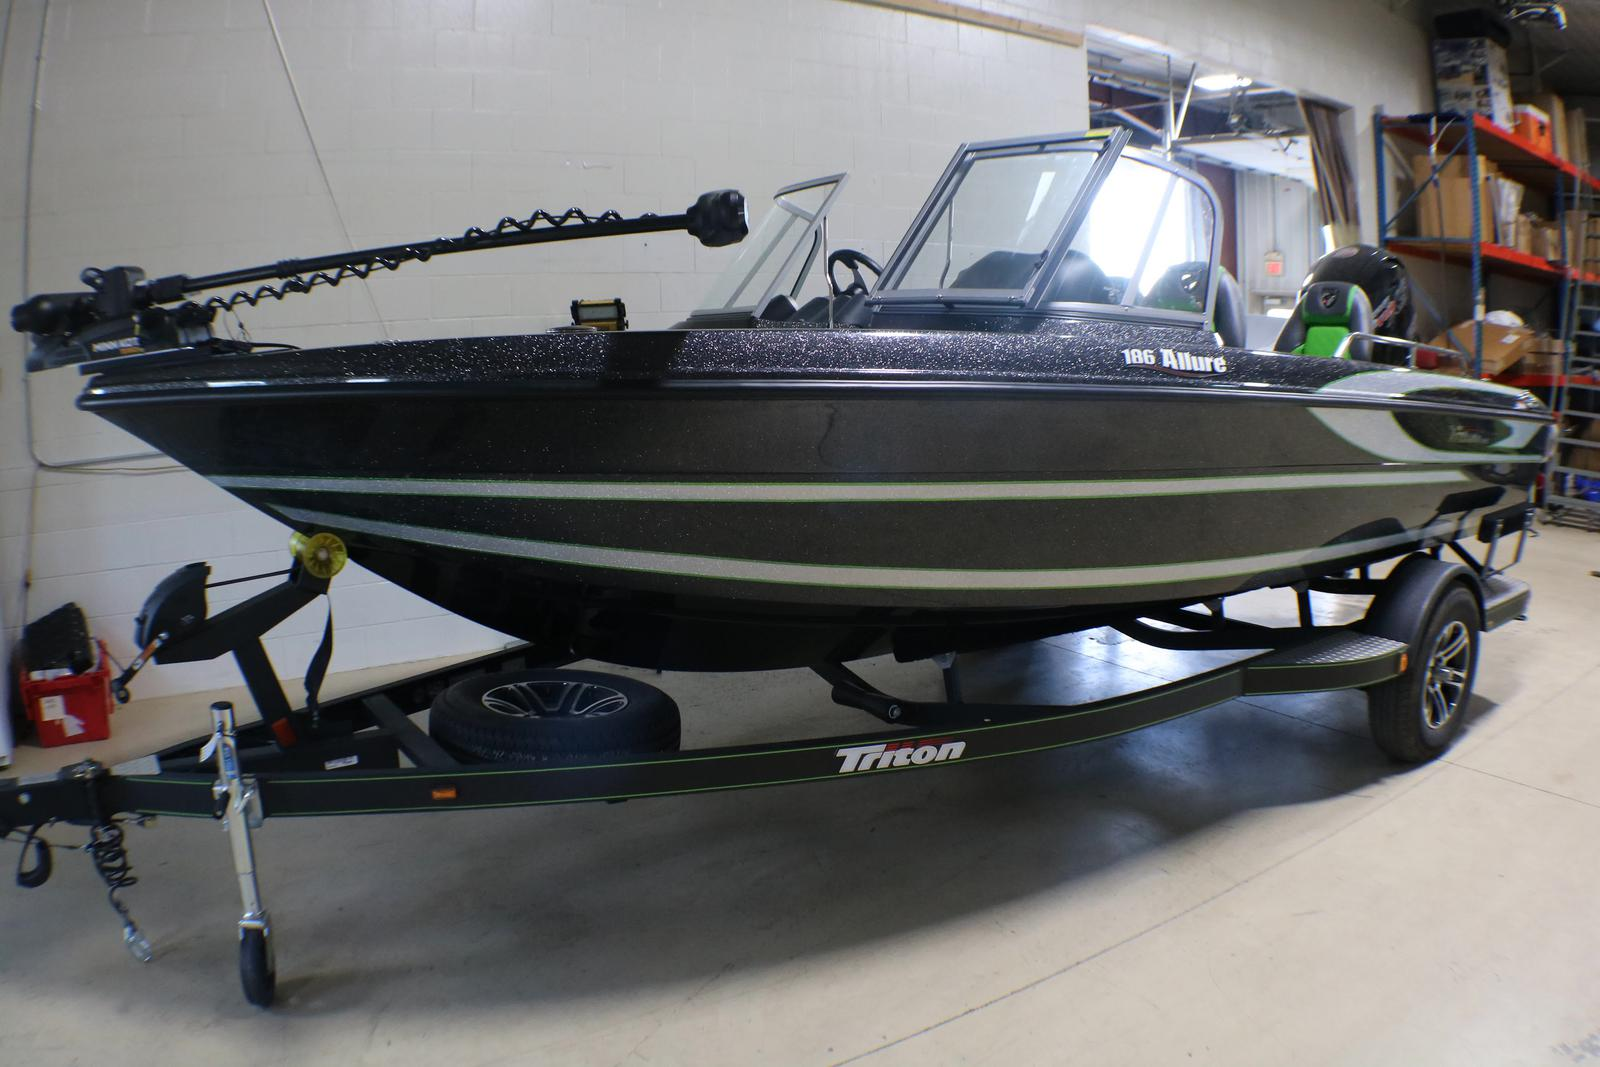 Inventory from Bennche and Triton Boats River City Sports